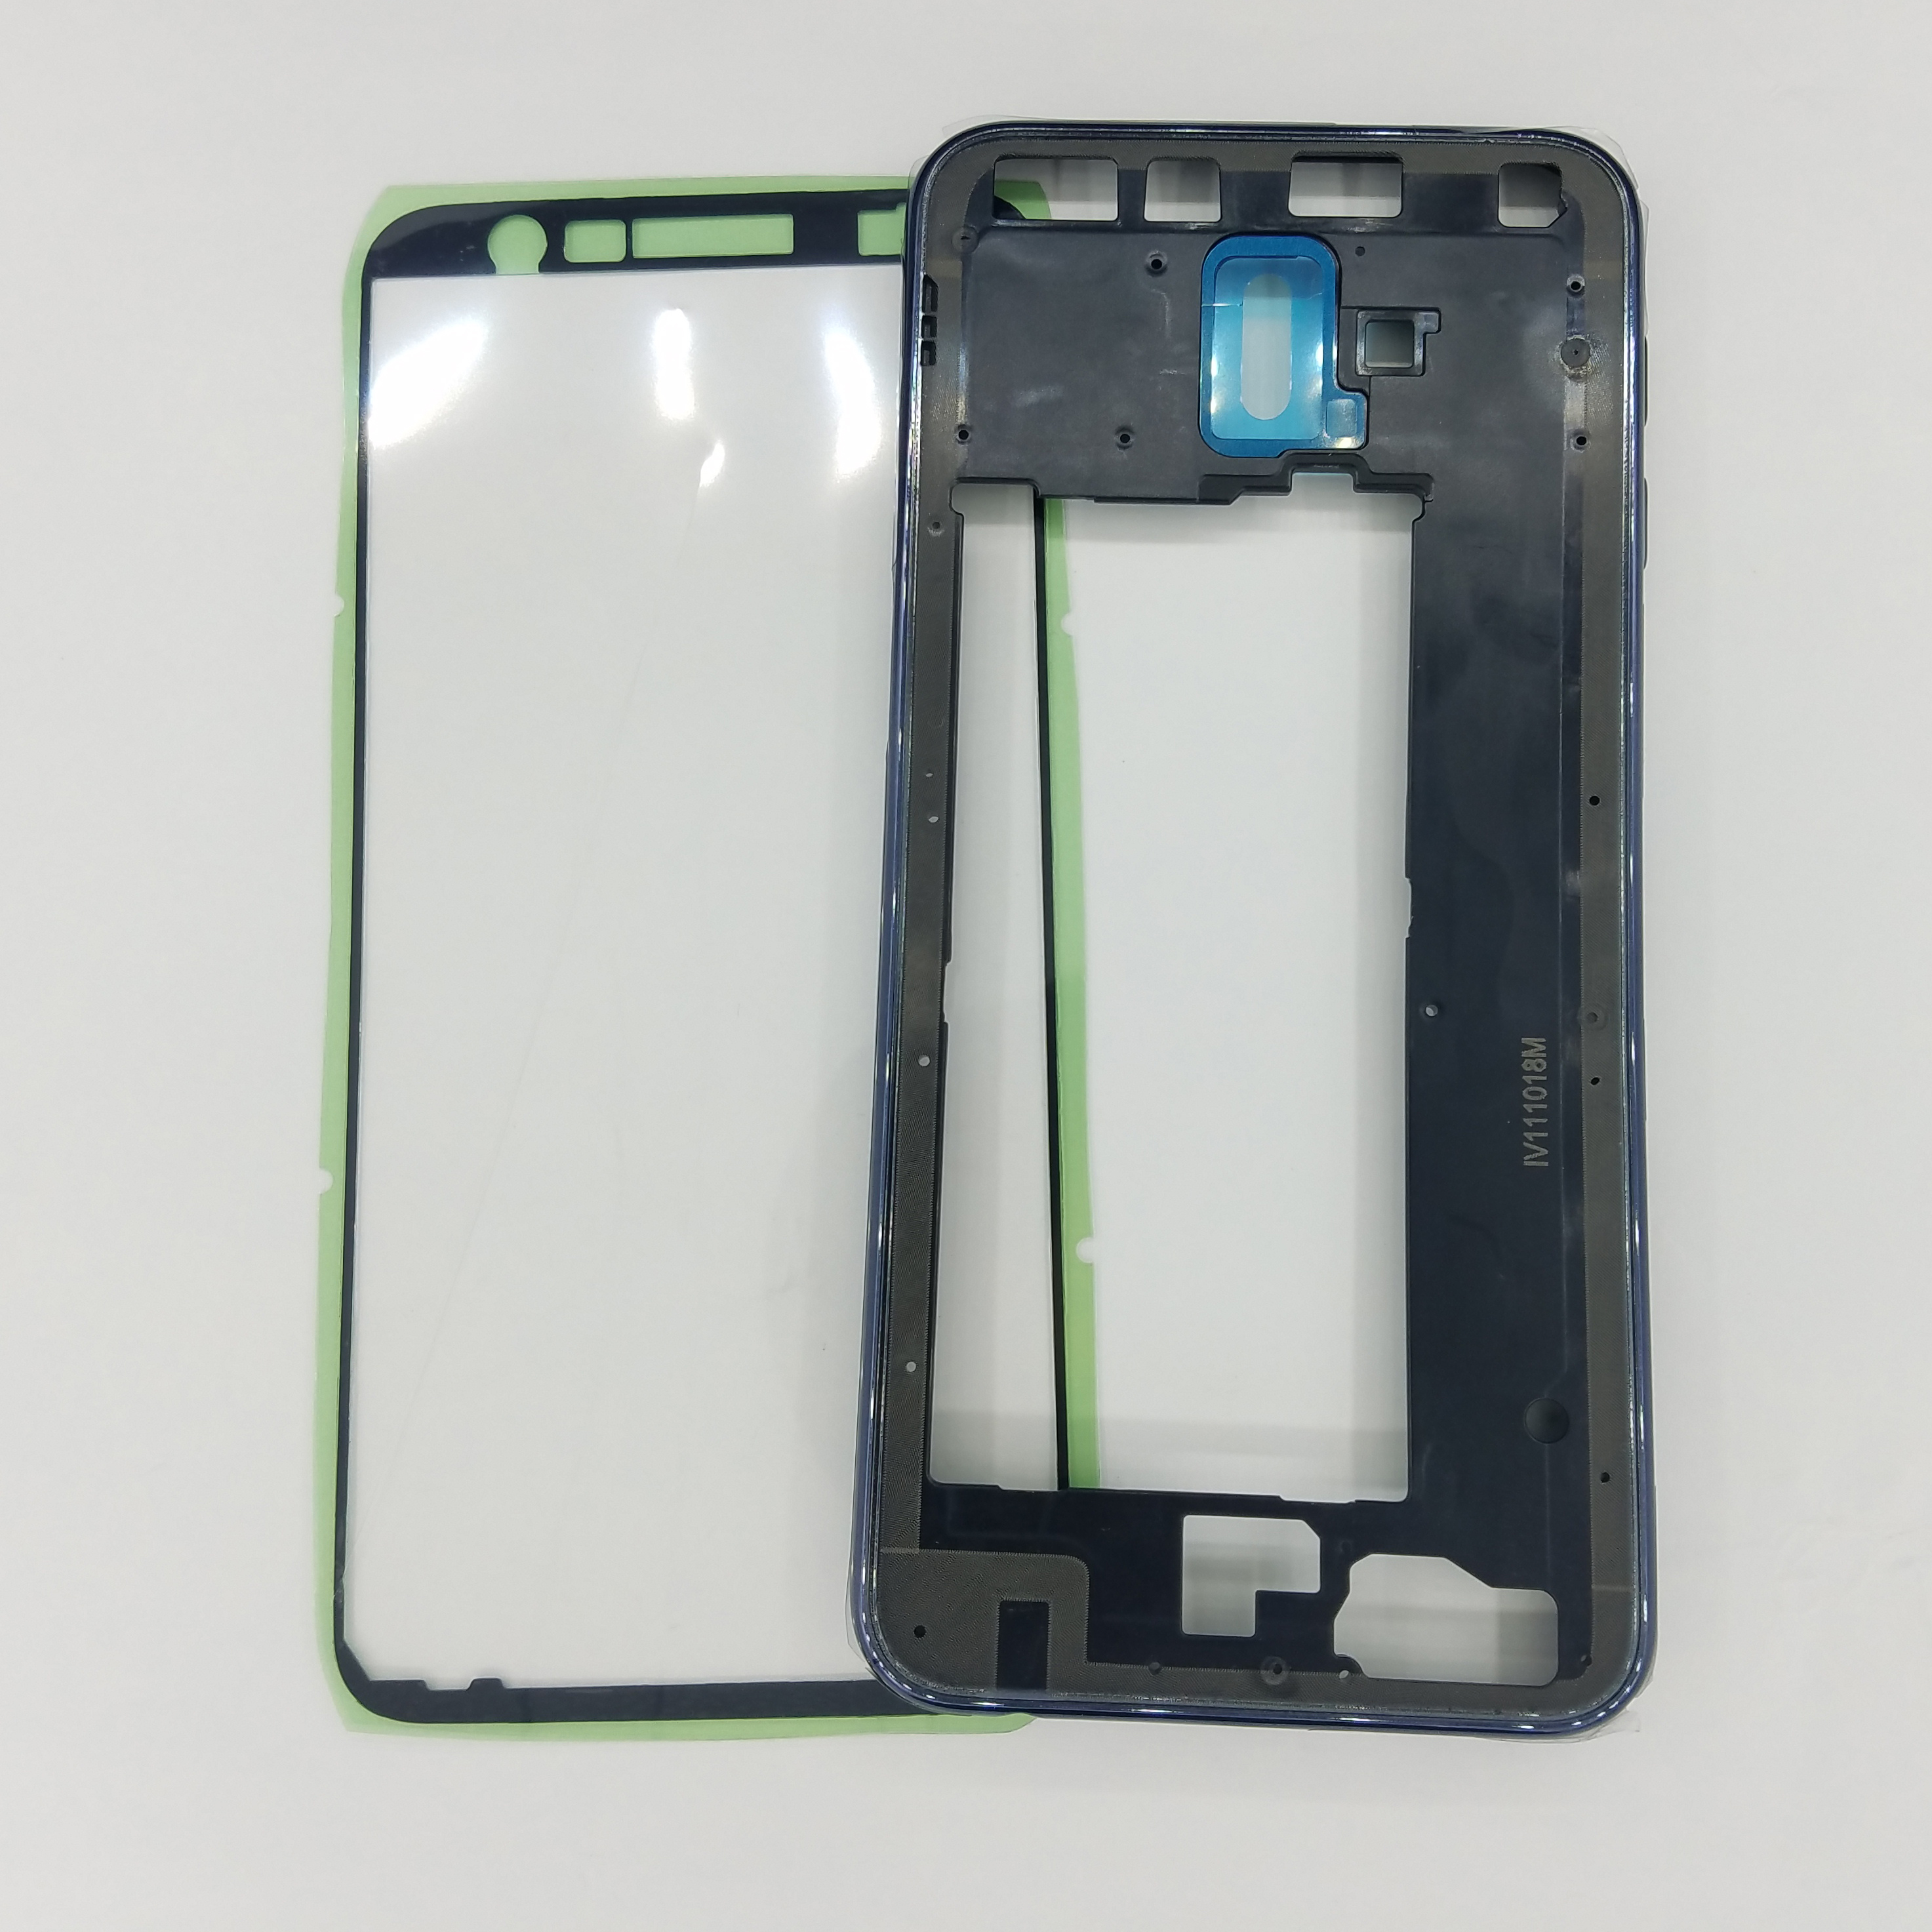 For Samsung Galaxy J6 Plus J6+ 2018 J610 J610F J610FN J610G Original Phone New Side Housing Middle Frame Chassis With Key Button